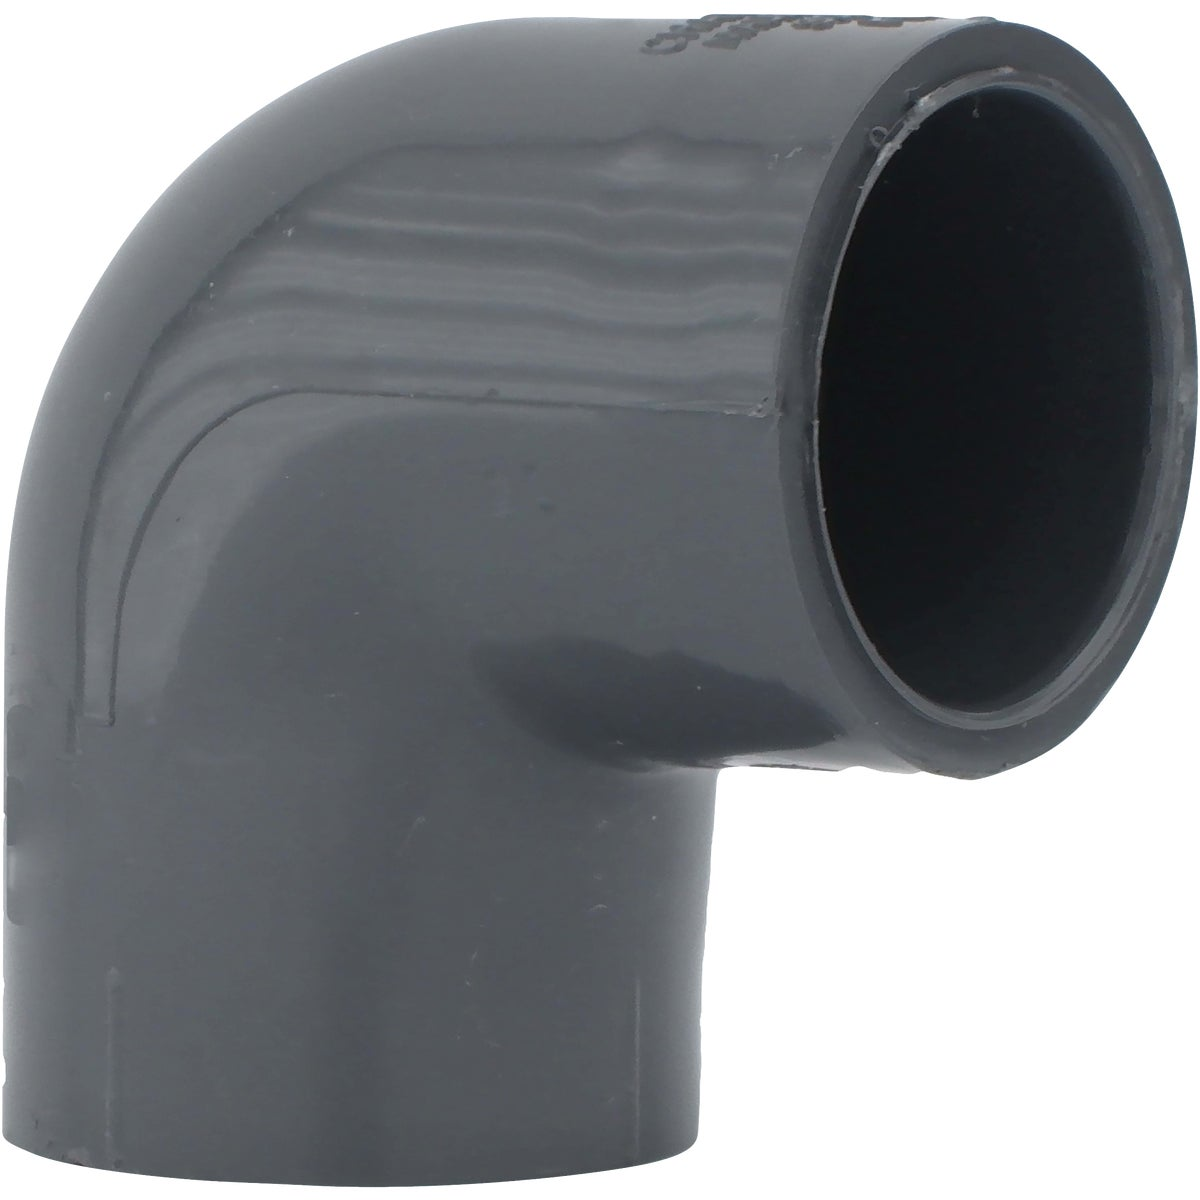 "1-1/4"" 90D SCH80 ELBOW - 307148 by Genova Inc"